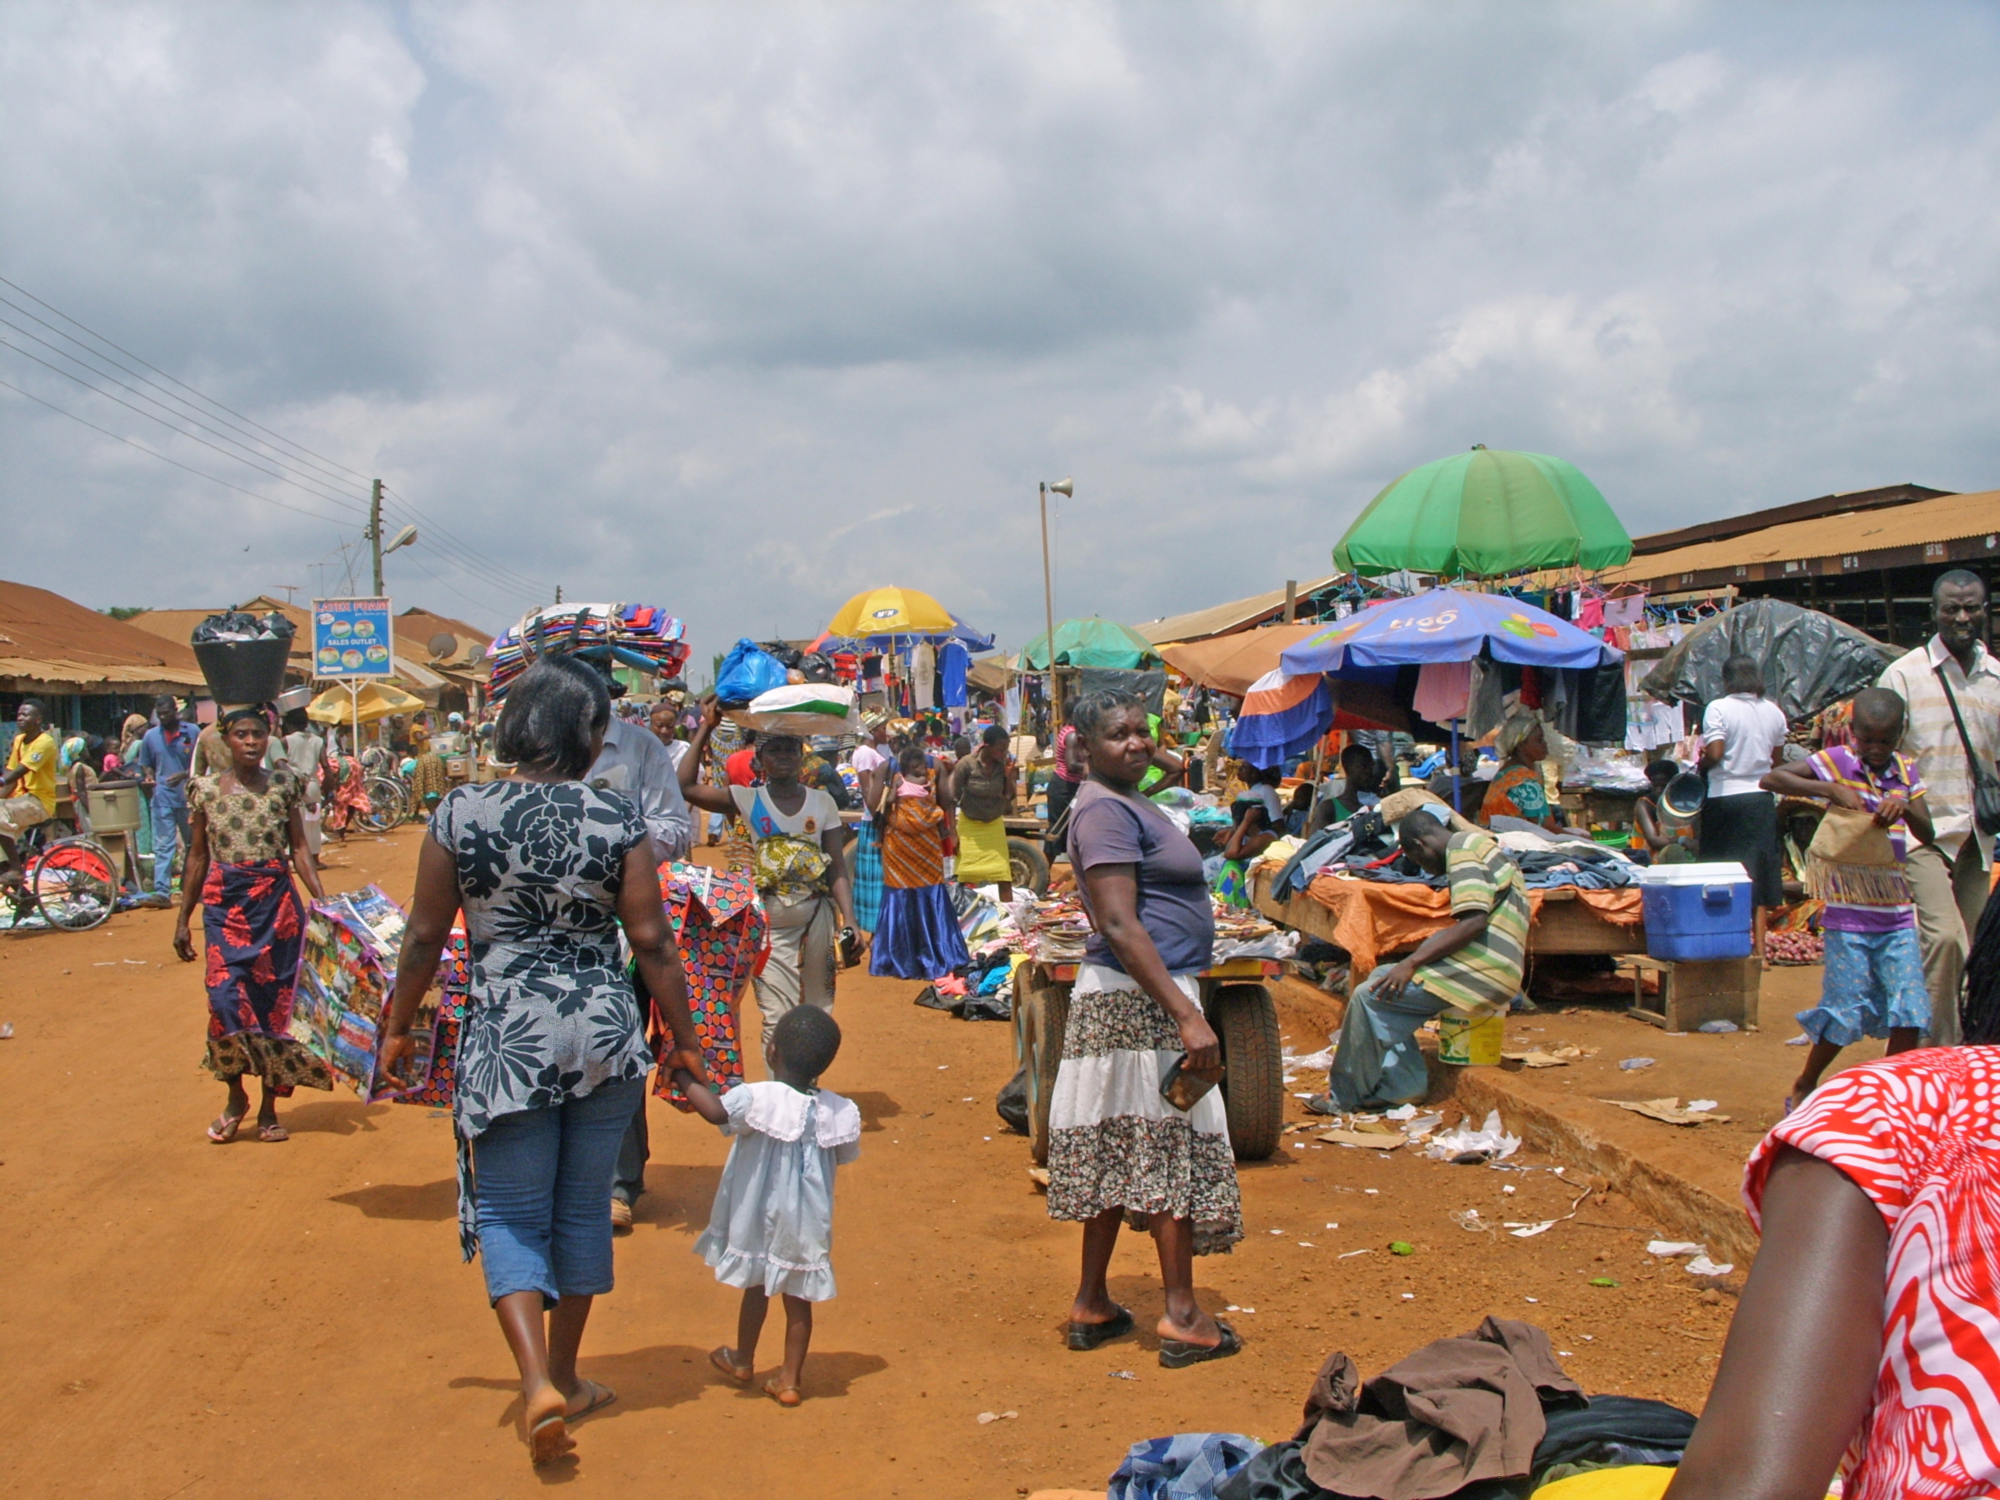 Modern day Sampa Market. Sampa is Ghana's largest town on the border with Cote d'Ivoire, with 26,000 inhabitants.